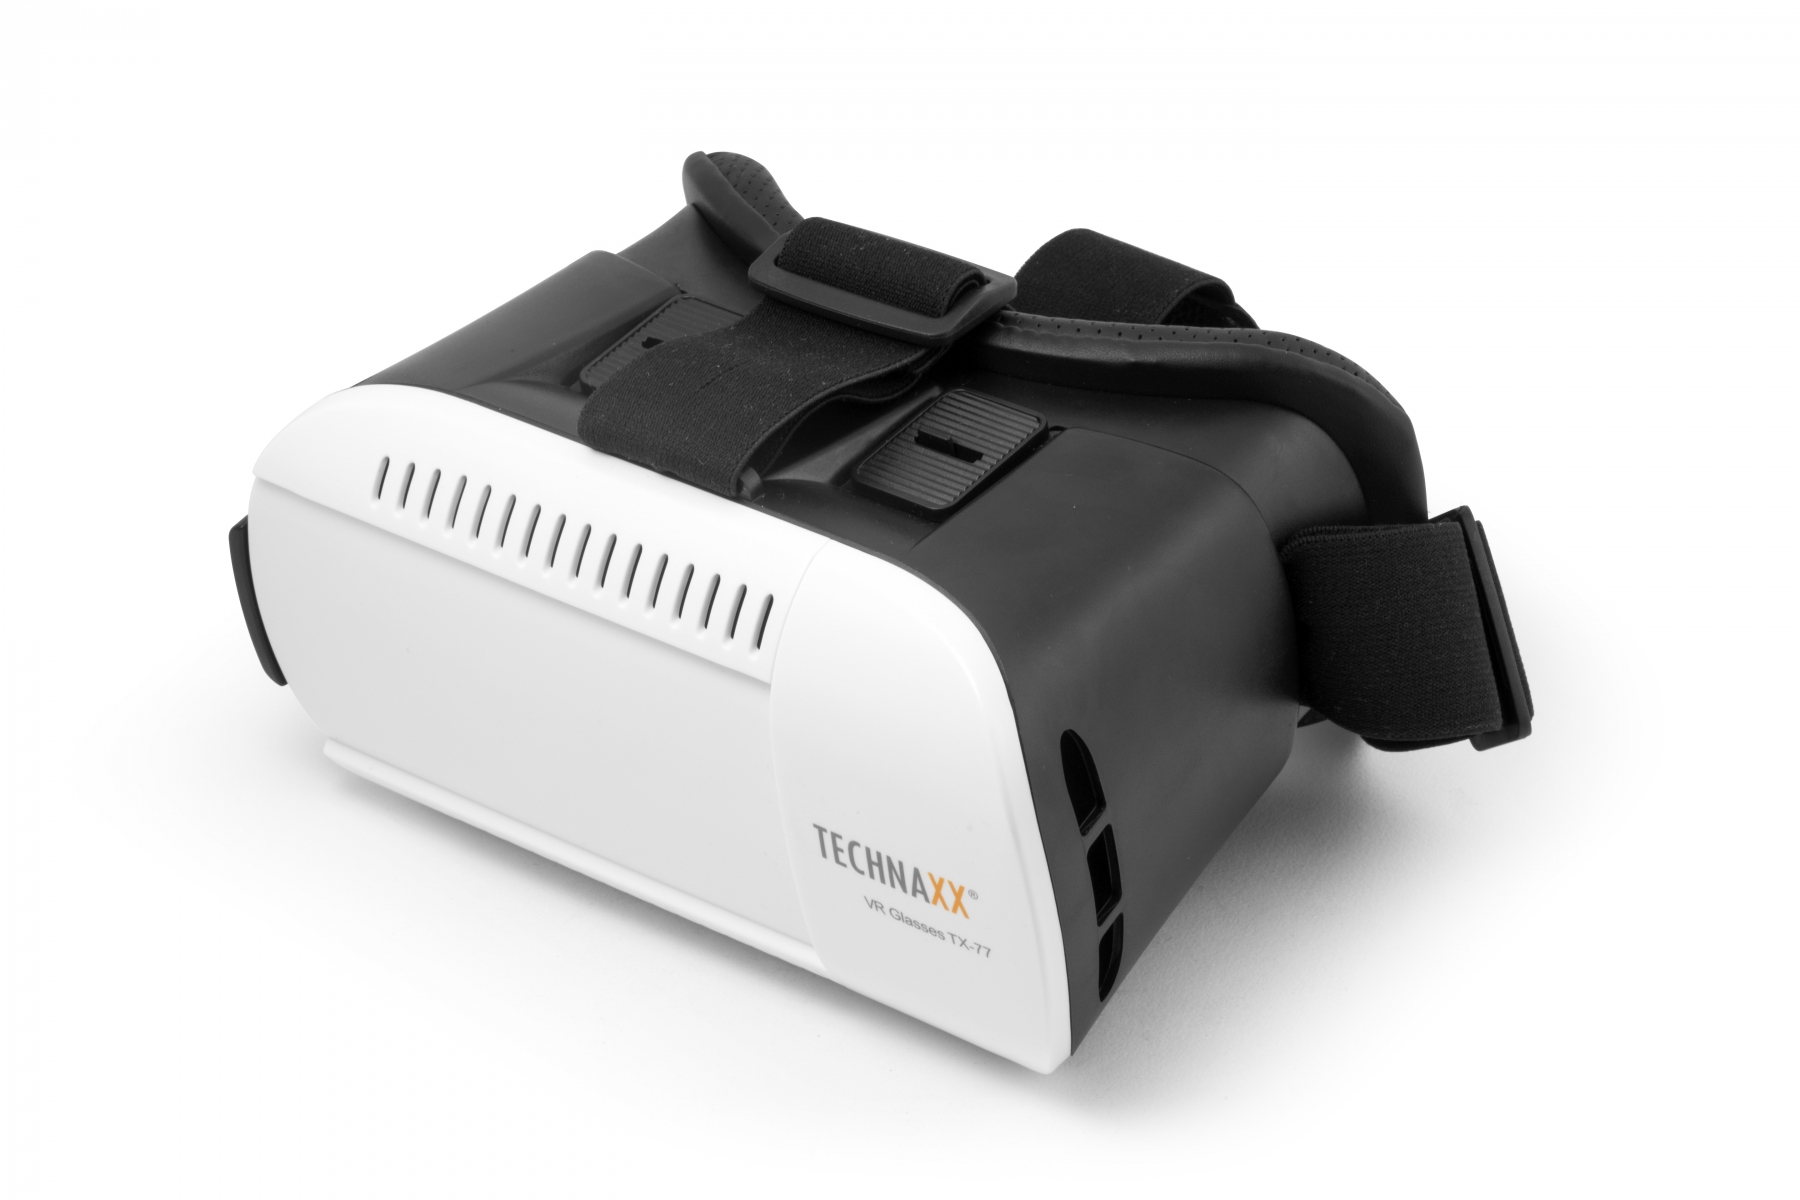 Technaxx 3D Virtual Reality Glasses for Smartphones TX-77